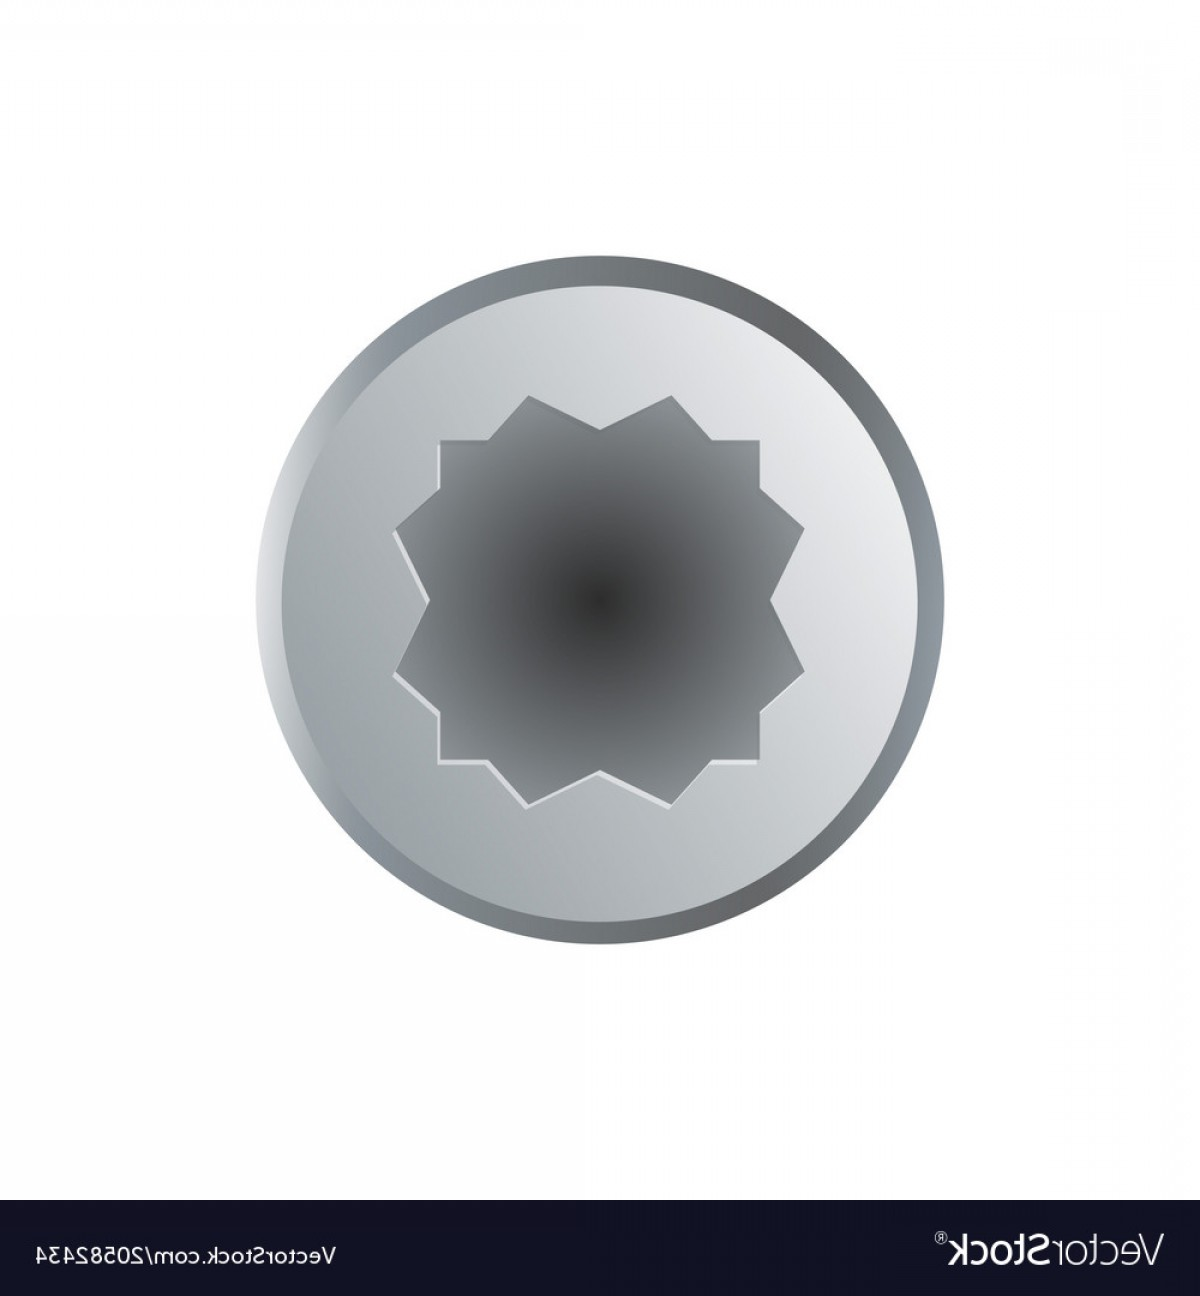 Bolt Head Vectors Gray: Realistic Allen Bolt Head Isolated On White Vector